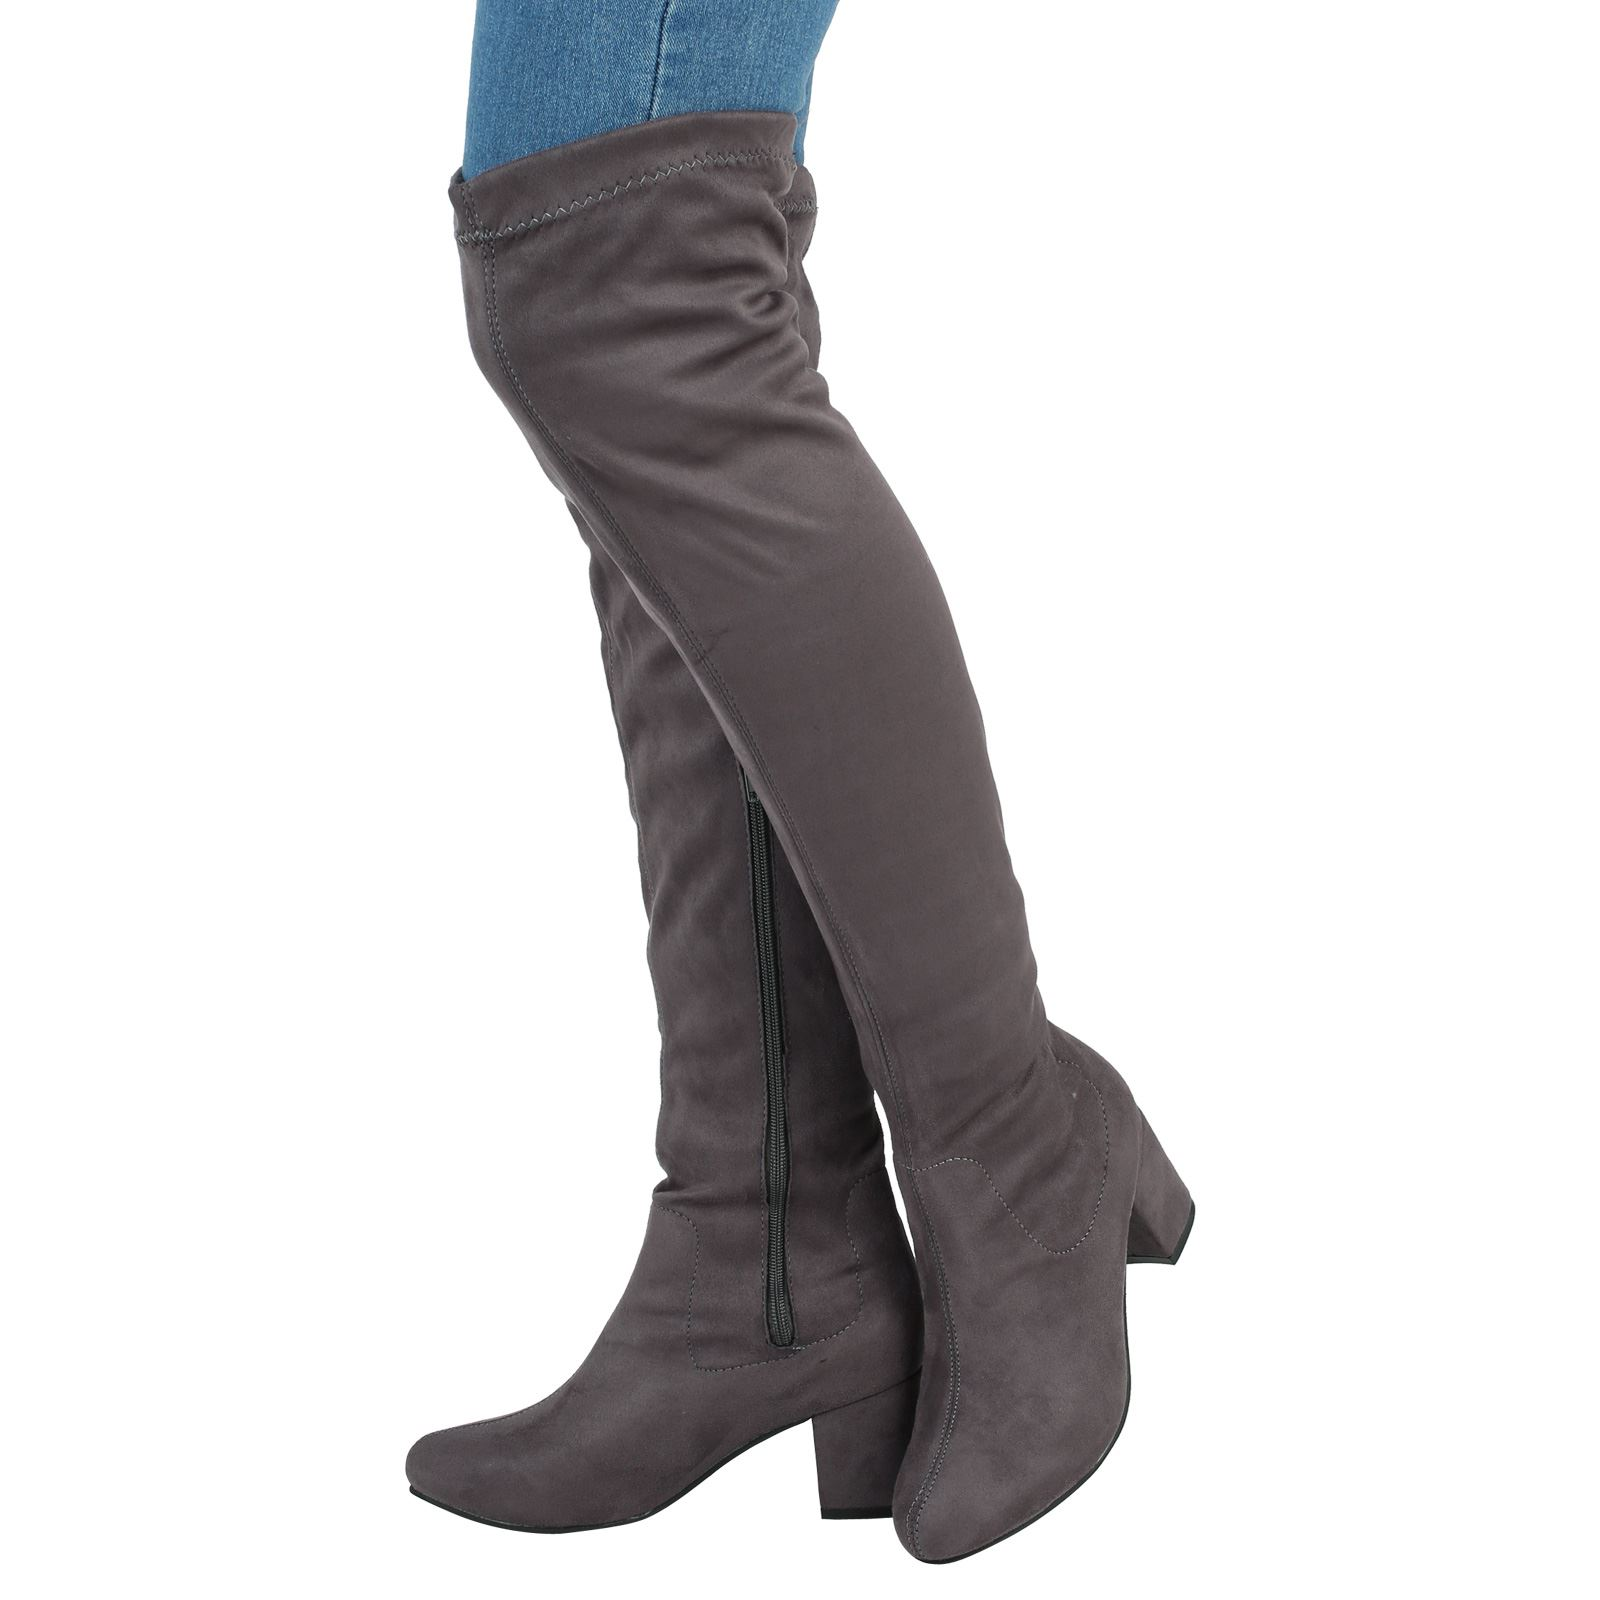 WOMENS BOOTS LADIES OVER THE KNEE HIGH MID BLOCK HEEL STRETCH ...